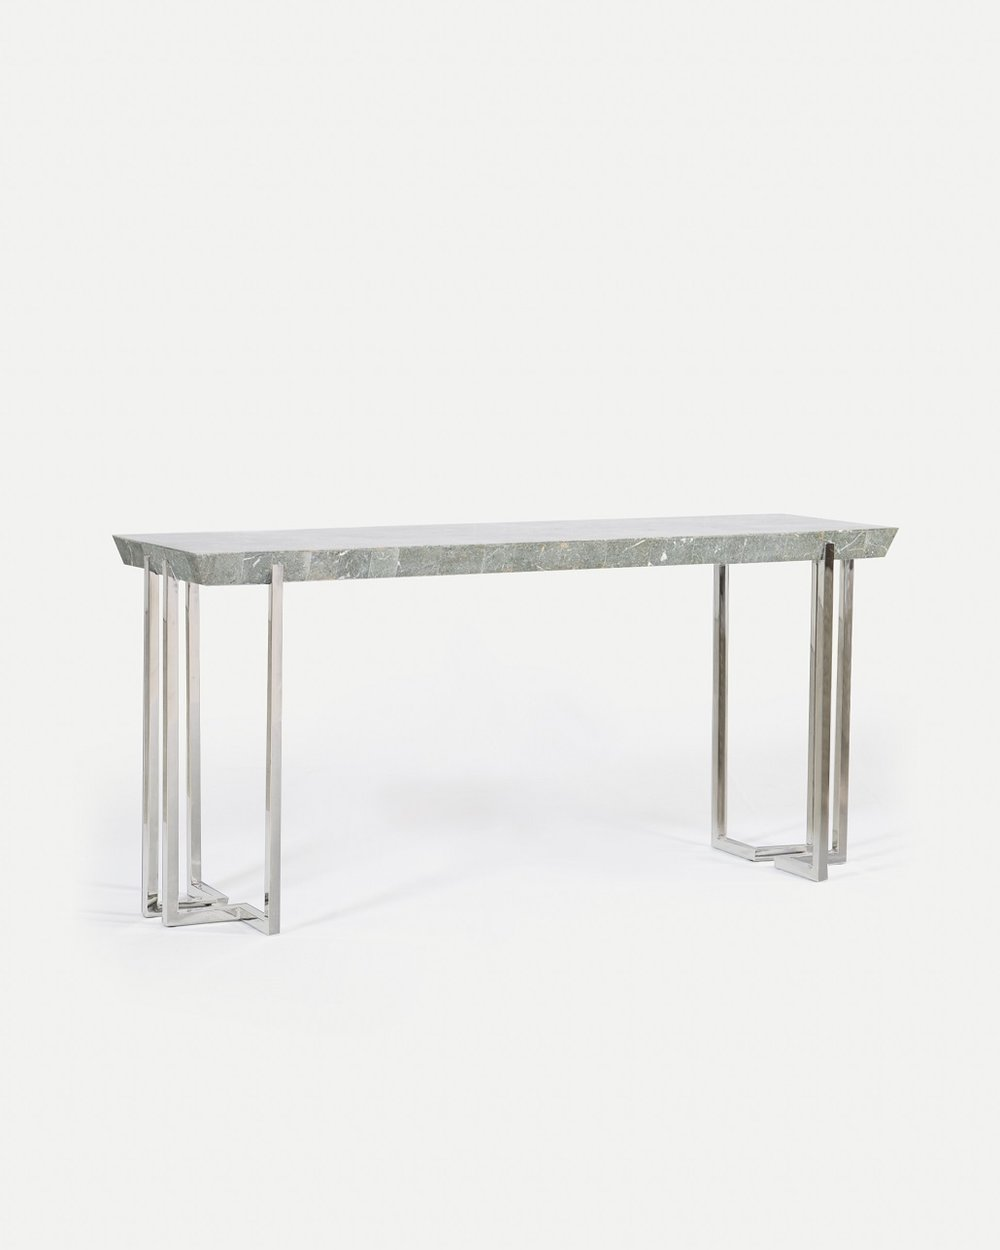 Co-Creative Studio, Detalia Aurora, Ercole Tables, Gray Stone Lamination, Stainless Steel.jpg